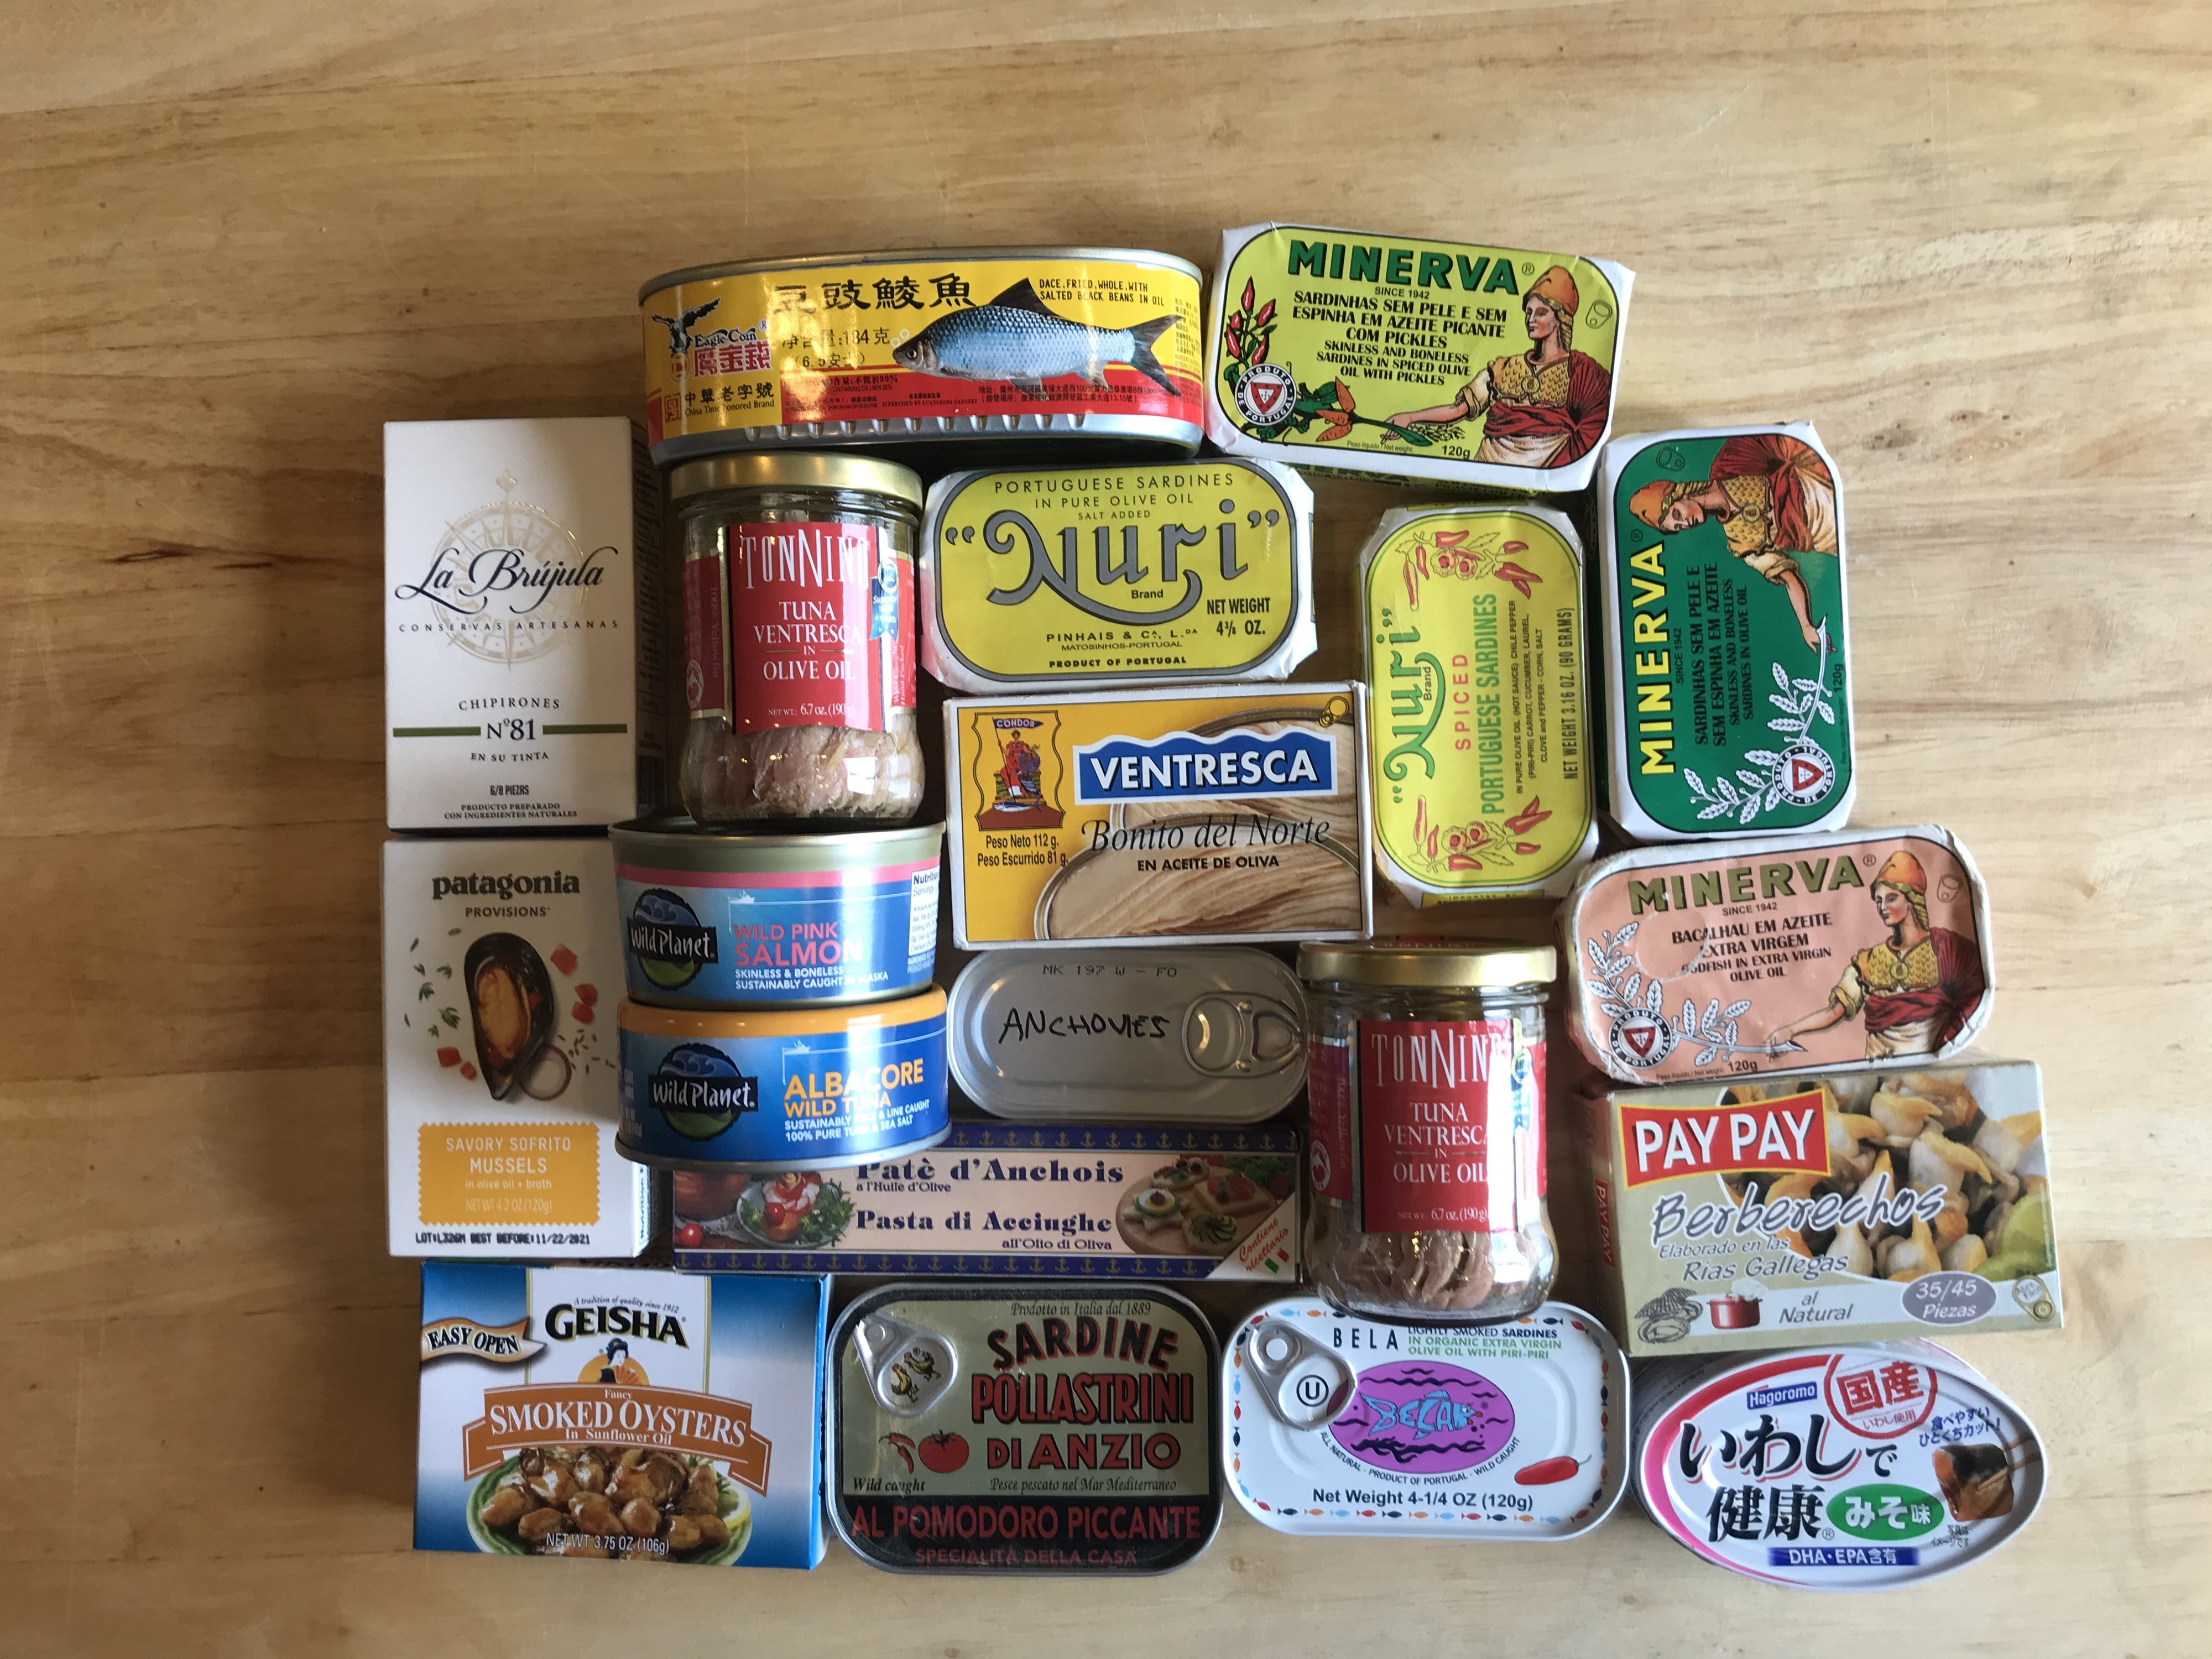 A variety of tinned fish arranged on a wooden table